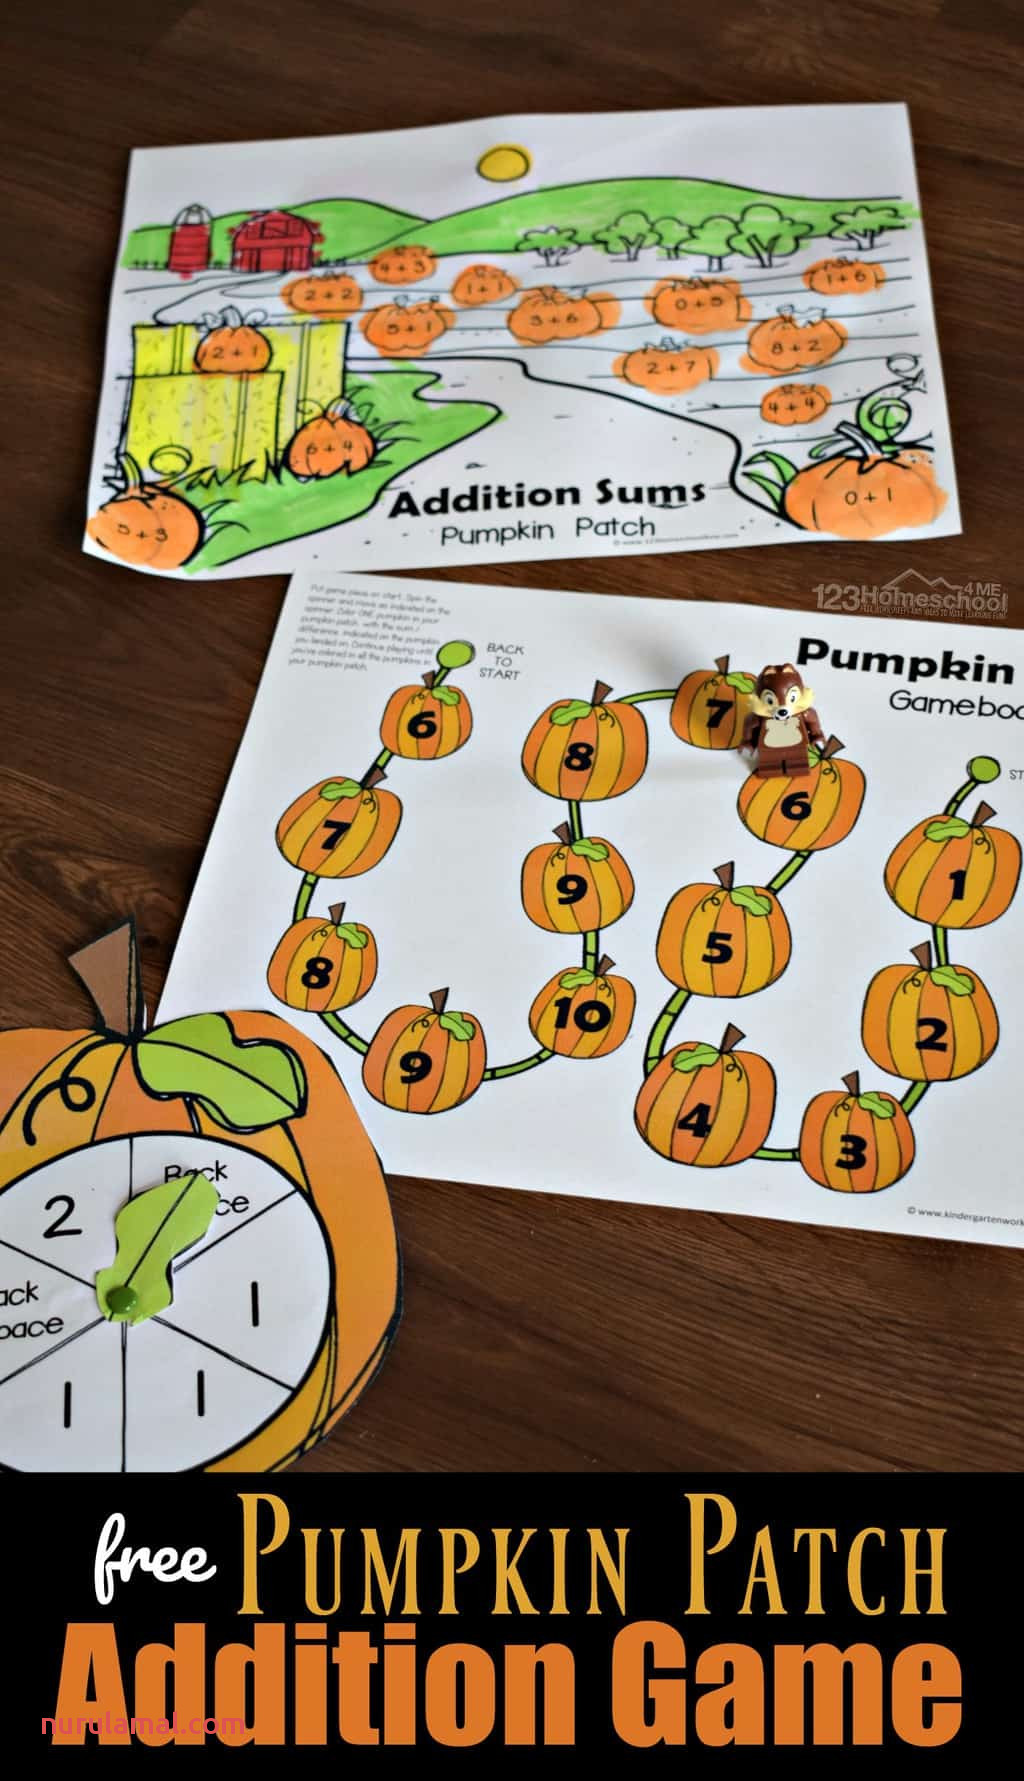 Free Pumpkin Patch Addition Game